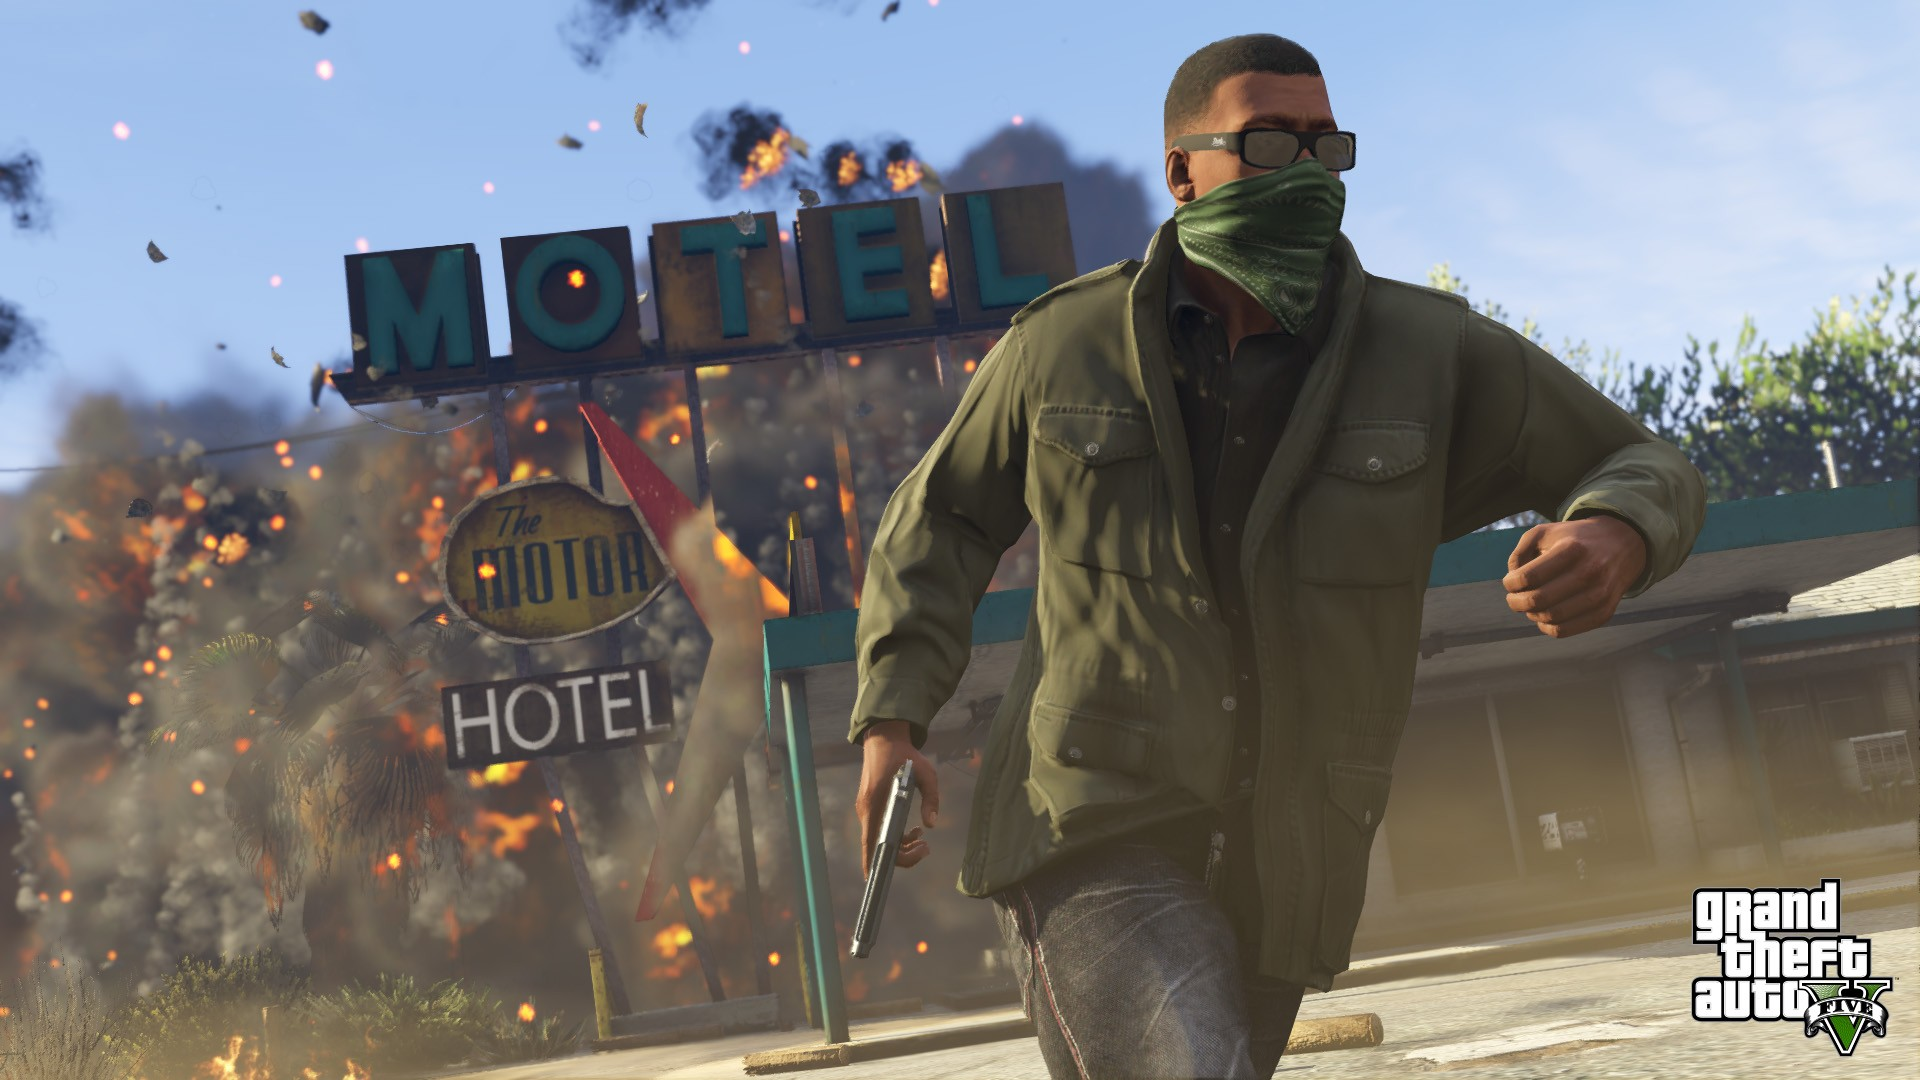 Gta 5 dev explains gta online character and mission transfer to pc gta 5 is coming soon to pc ps4 xbox one voltagebd Images